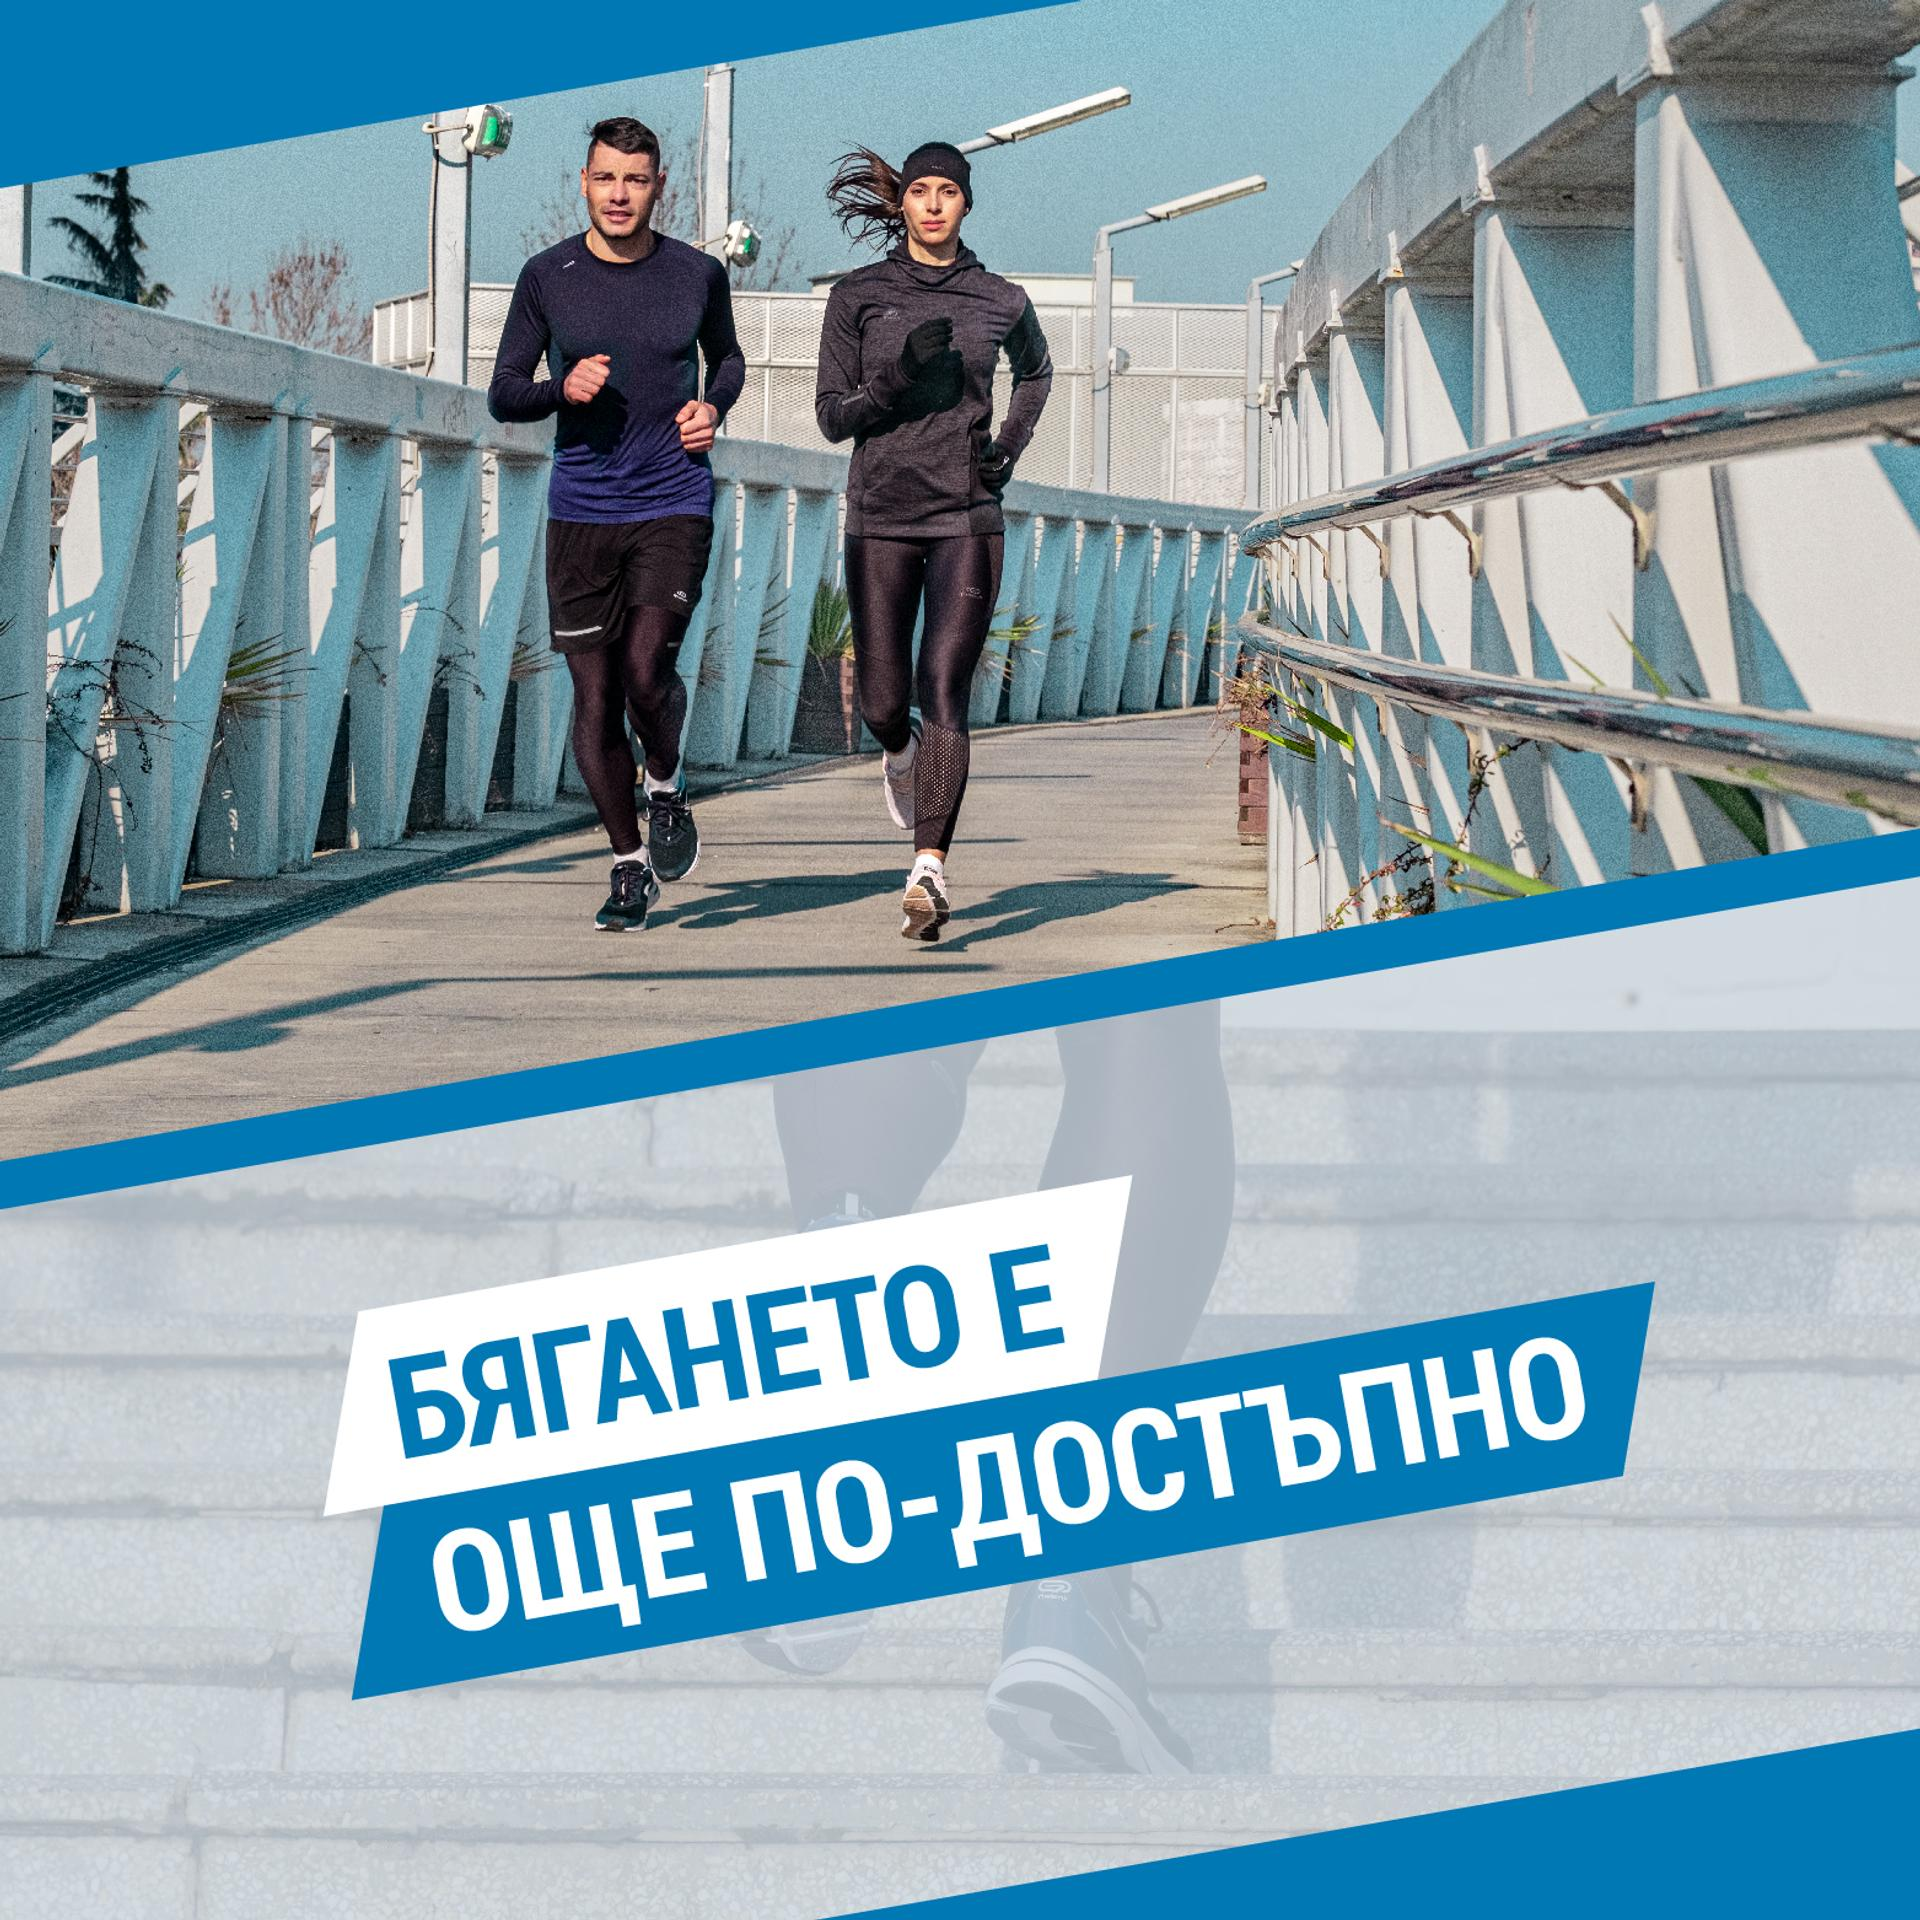 running_campaign_banner-01.jpg